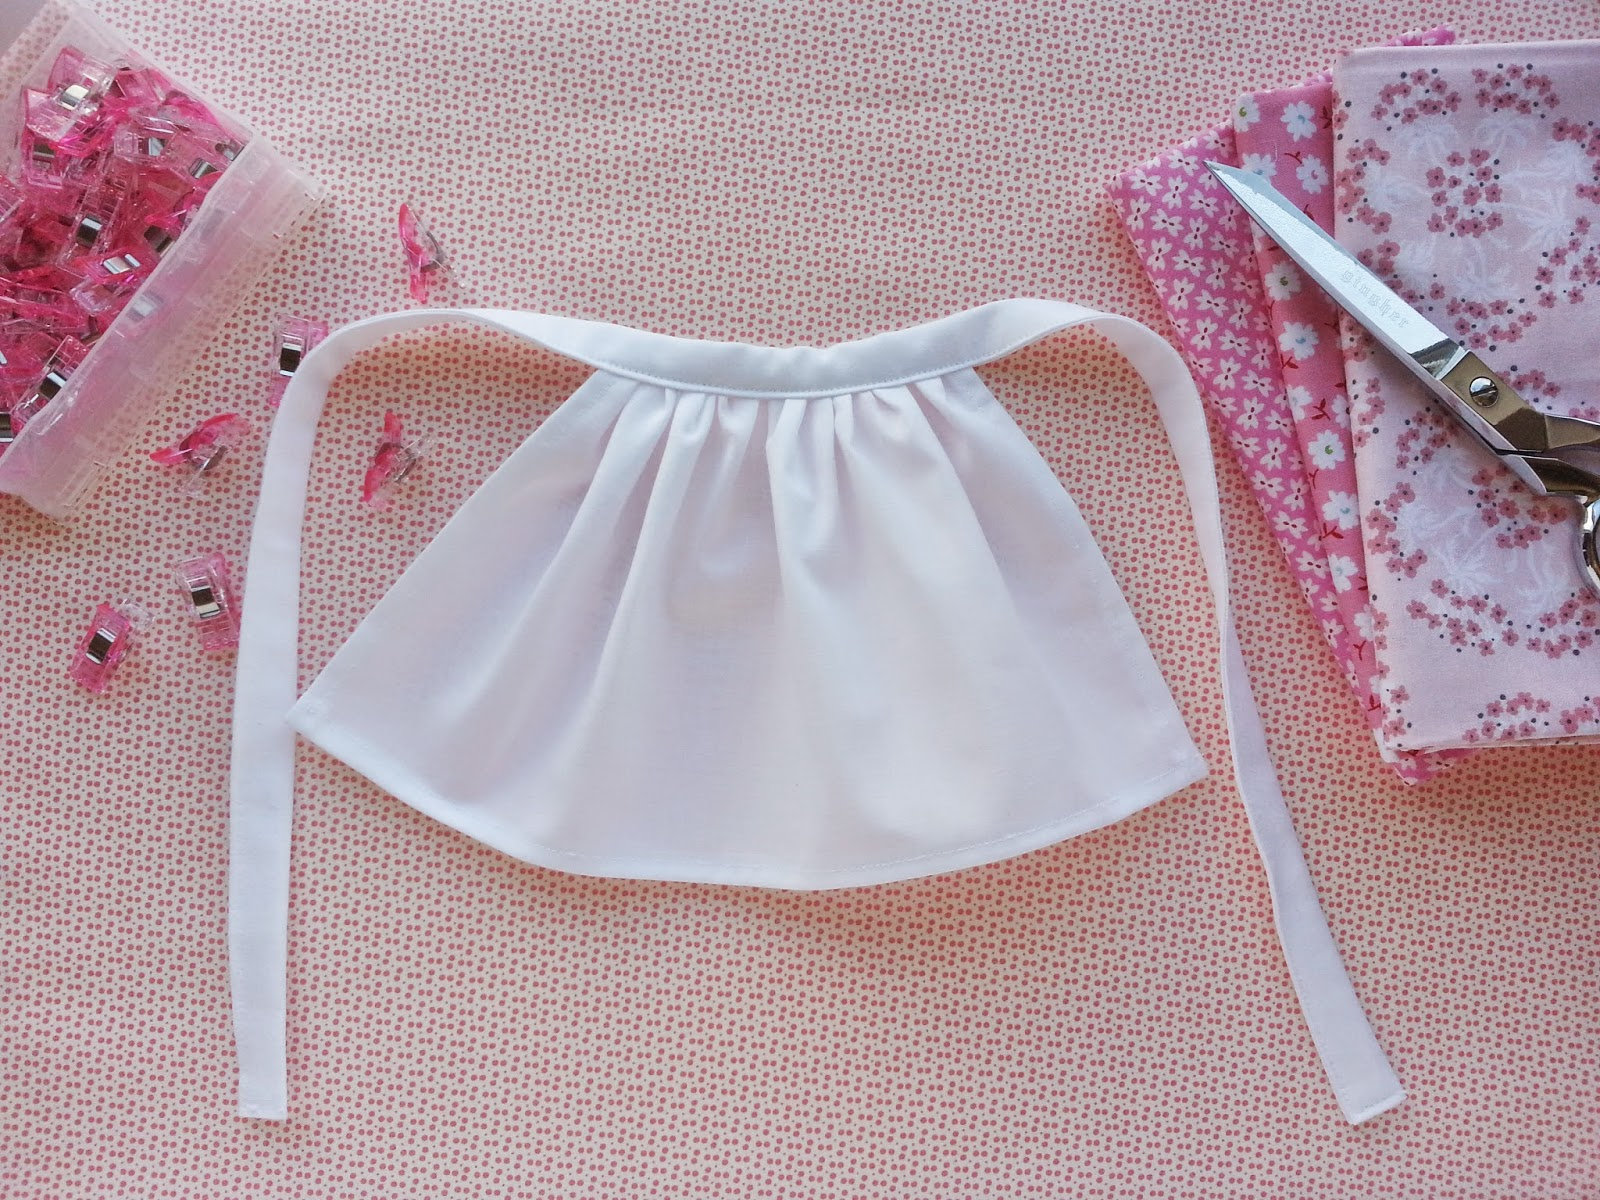 American Girl Doll Prairie Apron tutorial for Caroline